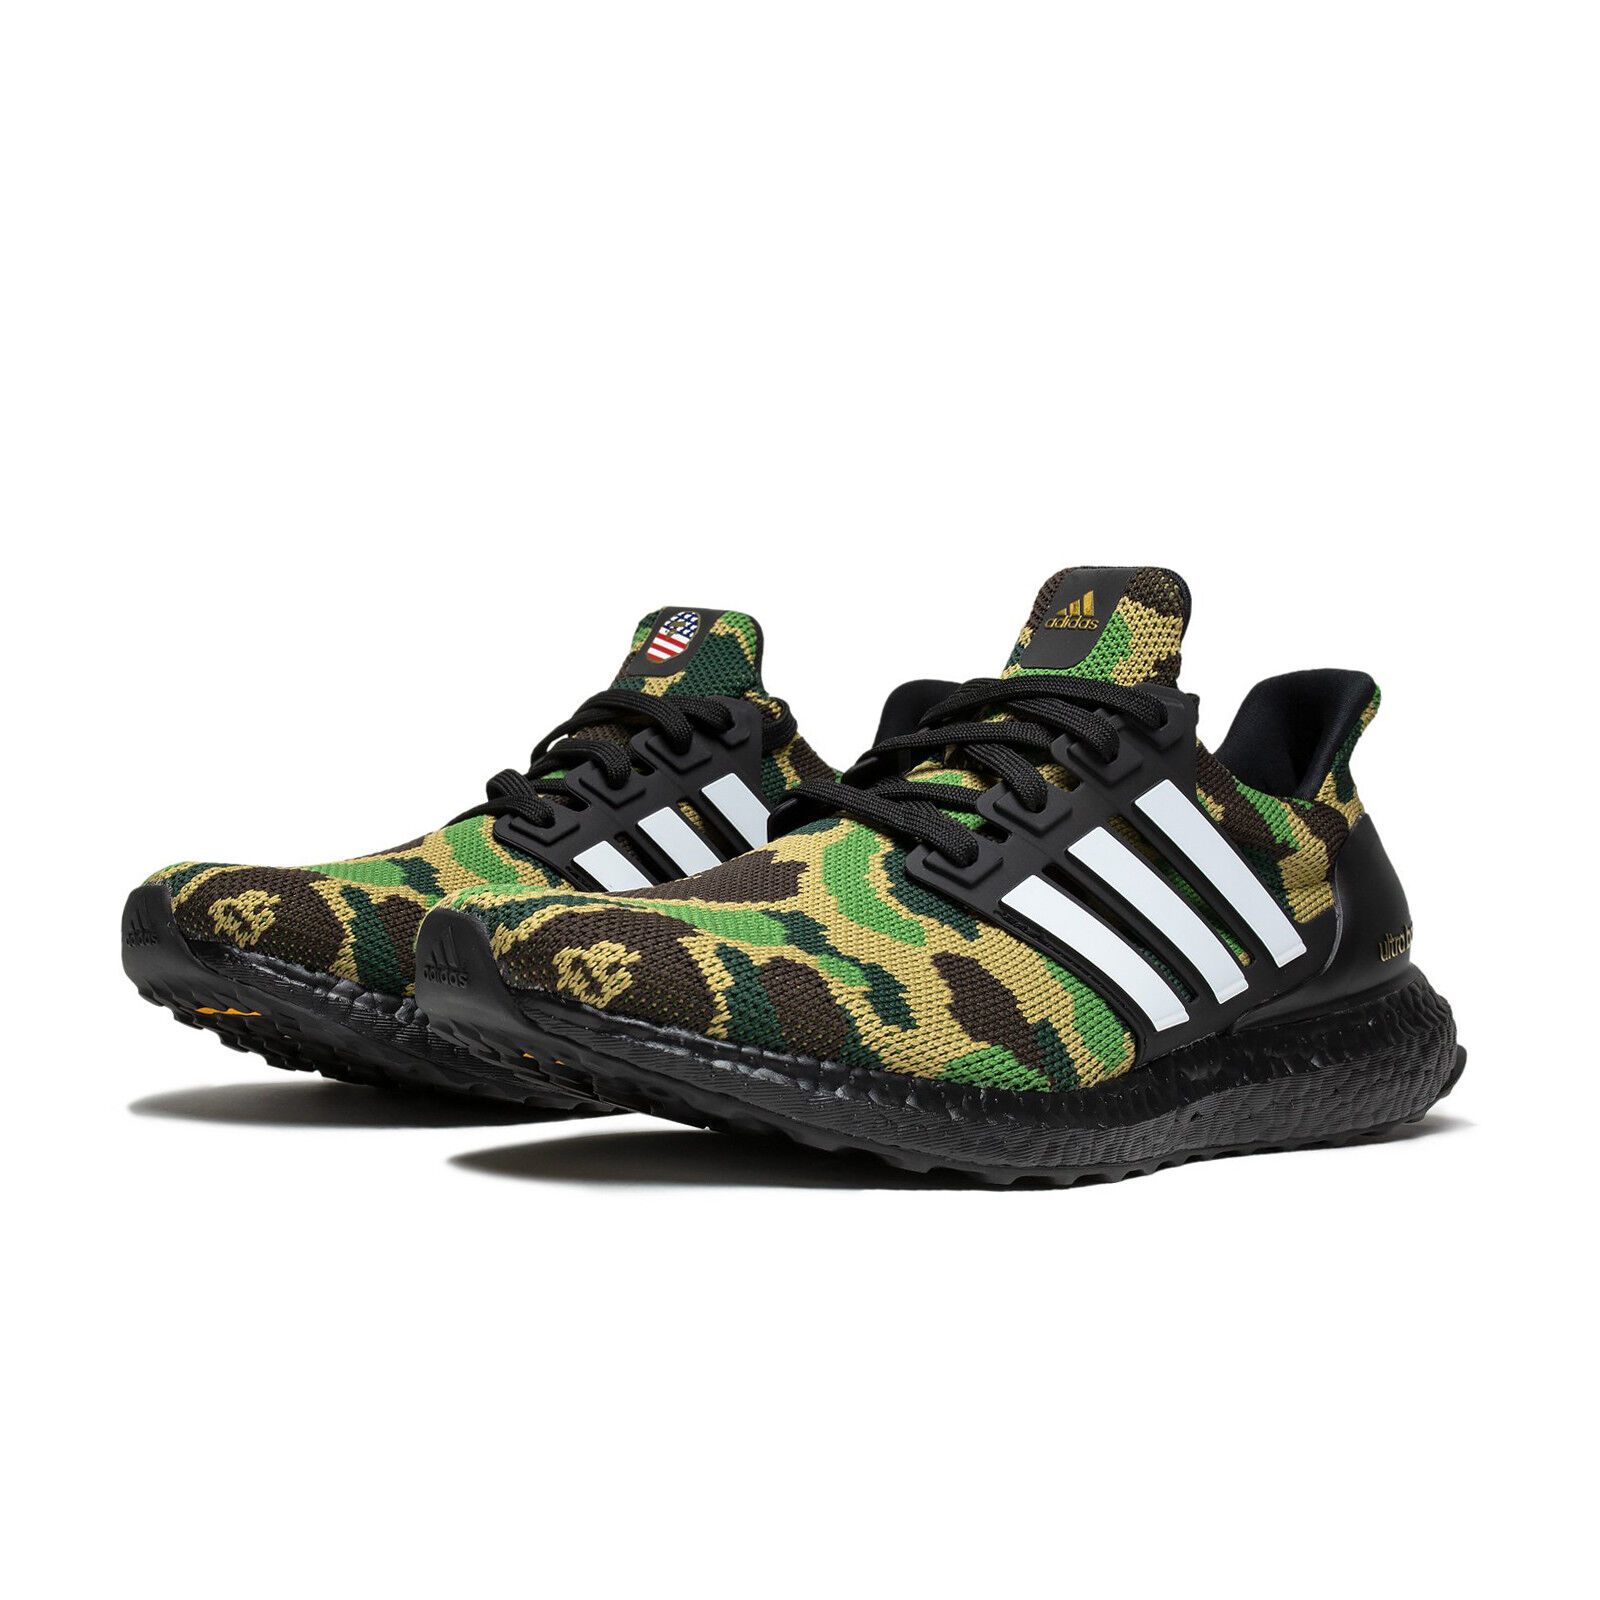 deaf179fd BAPE X adidas Consortium A Bathing Ape Superbowl UltraBOOST 4.0 Green Camo